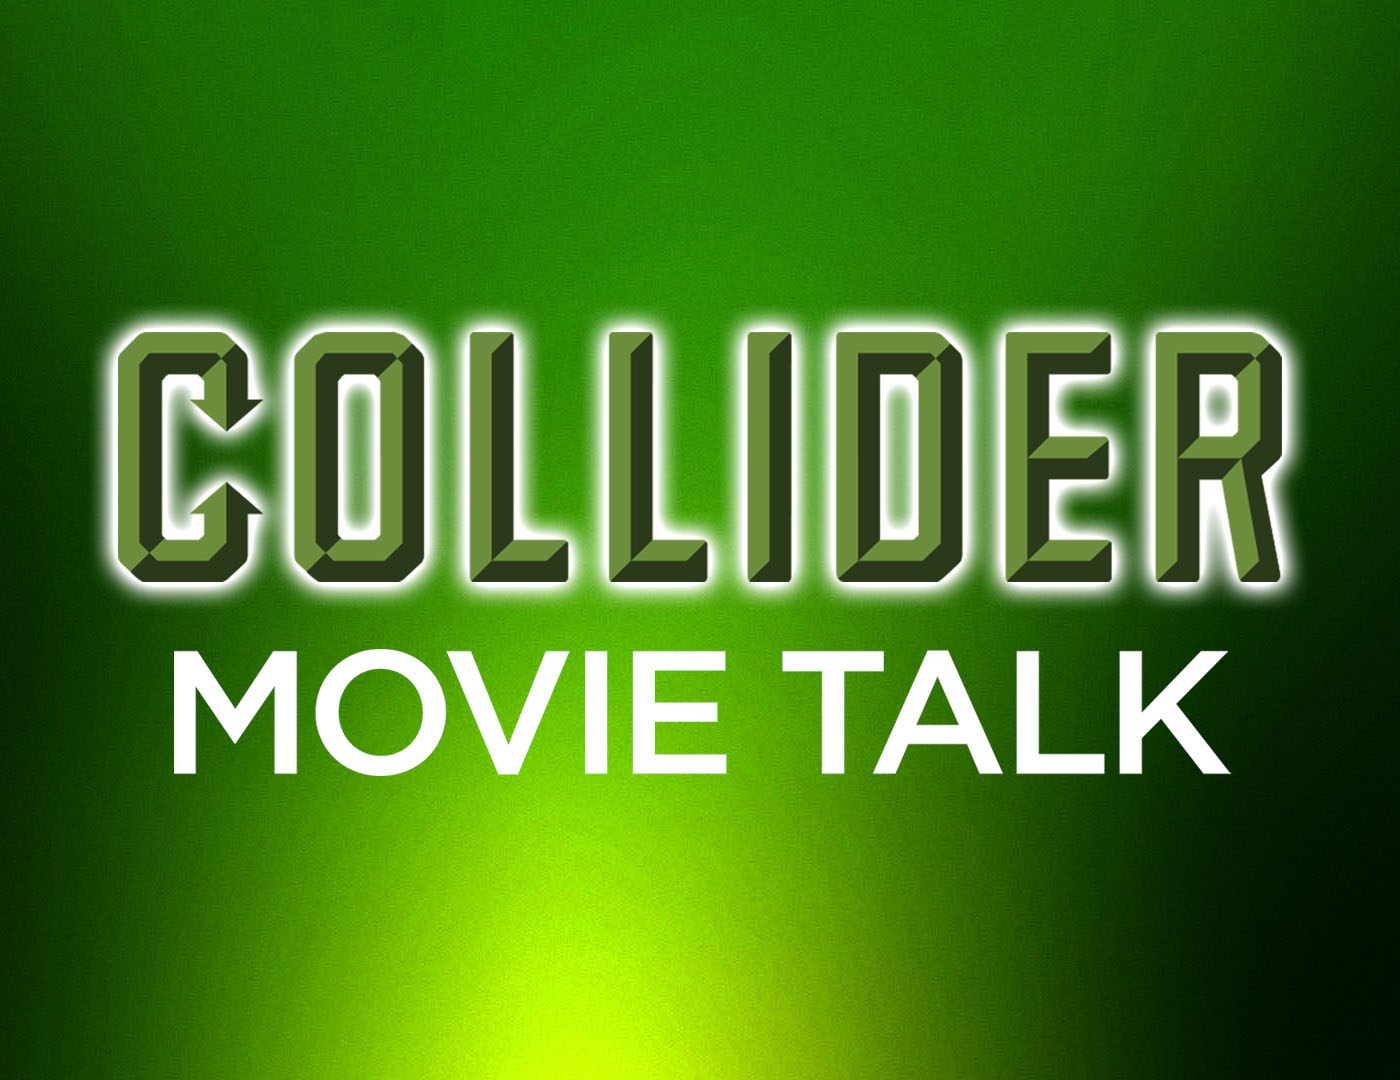 Collider Movie Talk - Tom Hiddleston In Talks To Play James Bond